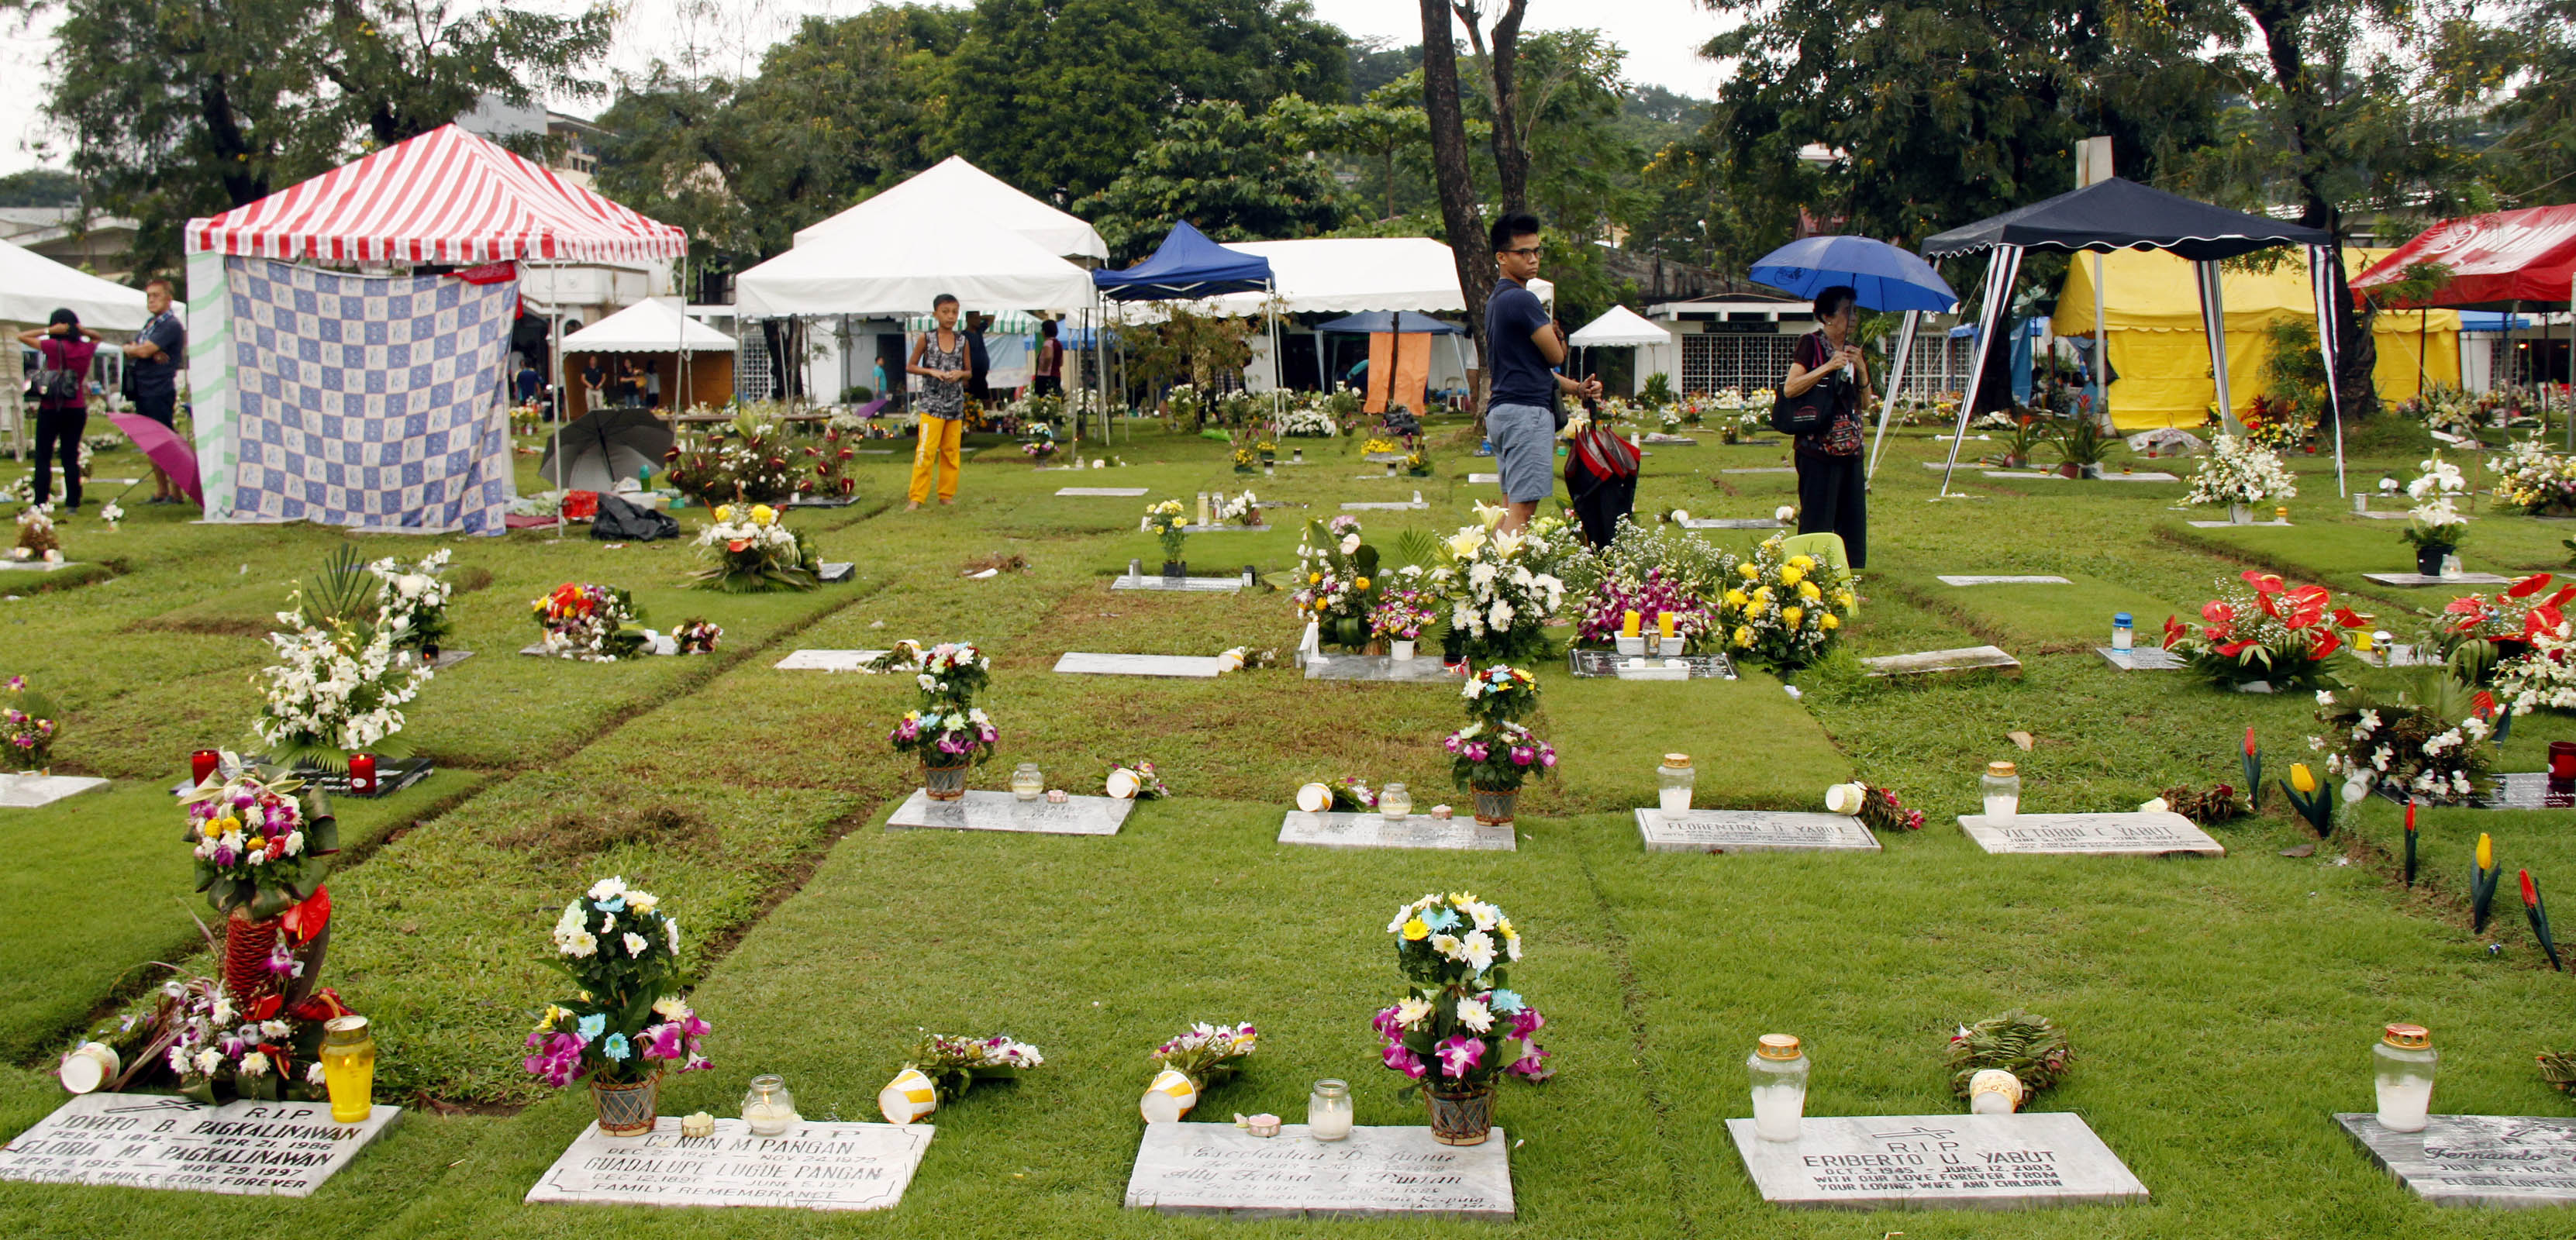 FILE: Around 2,886 personnel consisting of traffic enforcers and augmentation teams will be deployed to conduct clean up operations in various public and private cemeteries in Metro Manila, according to MMDA Chairman Danilo Lim. (Photo: Joey Razon/PNA)